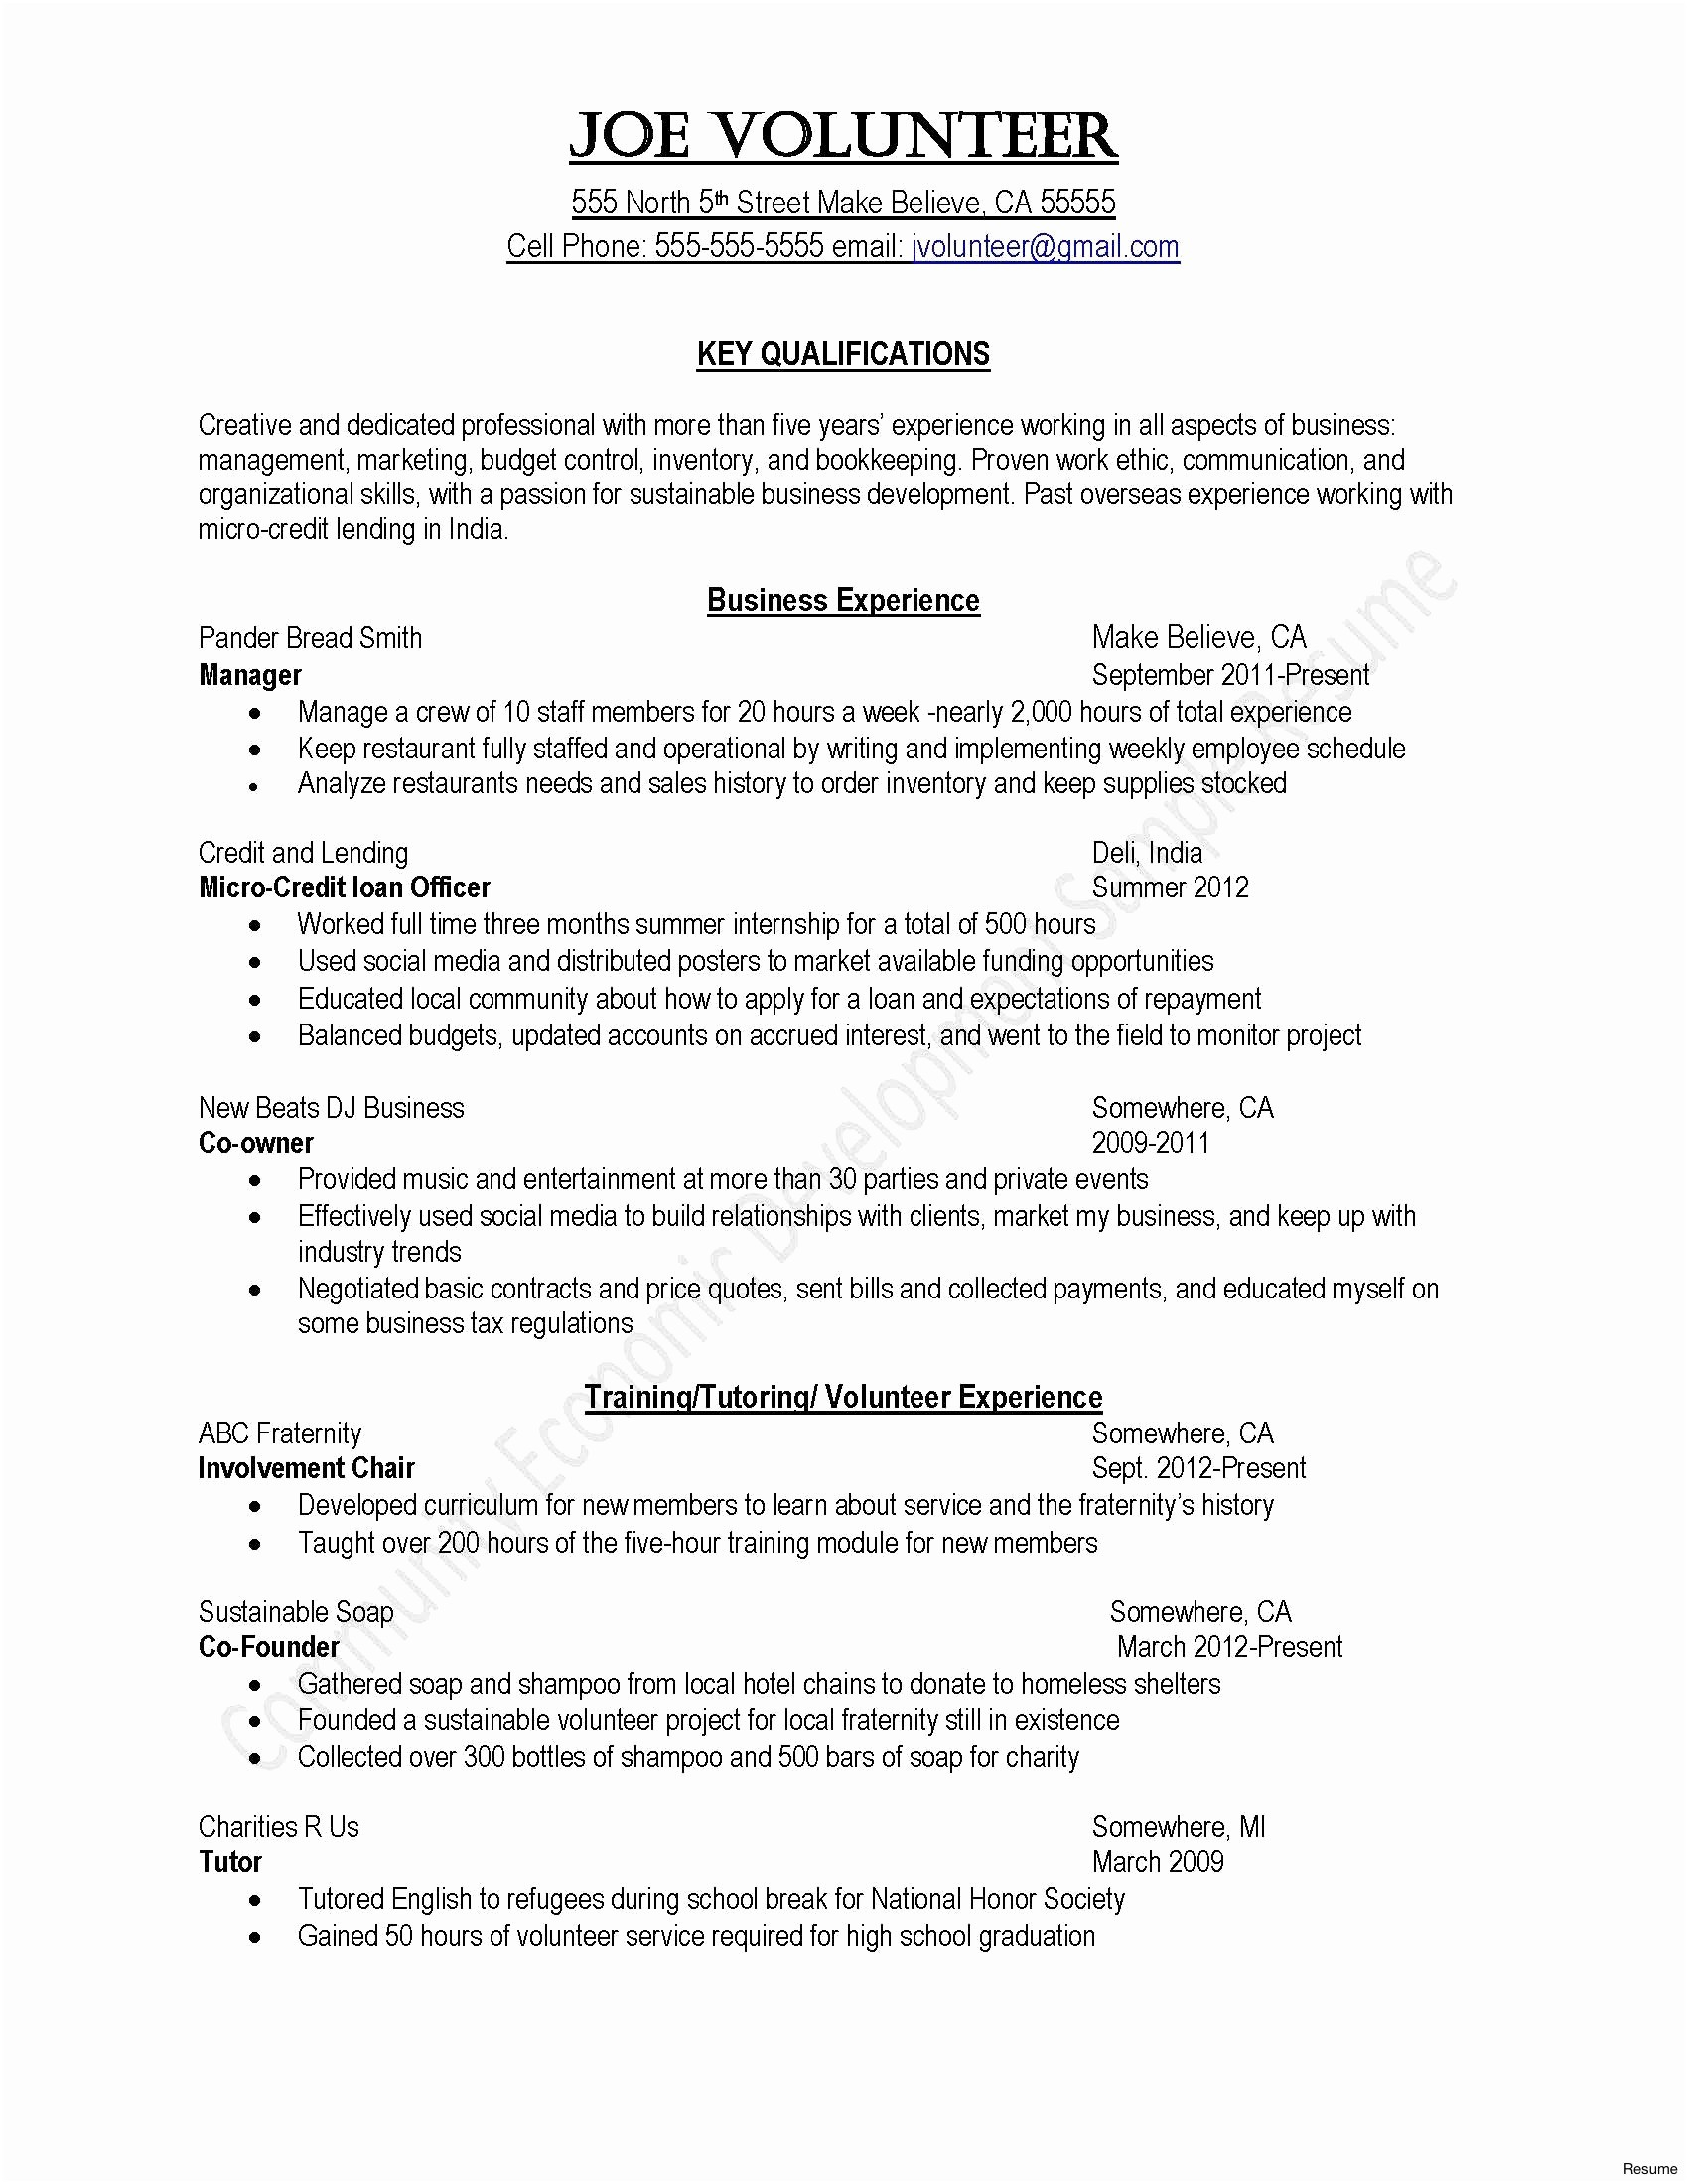 Tax Accountant Resume - Sample Resume for Tax Accountant